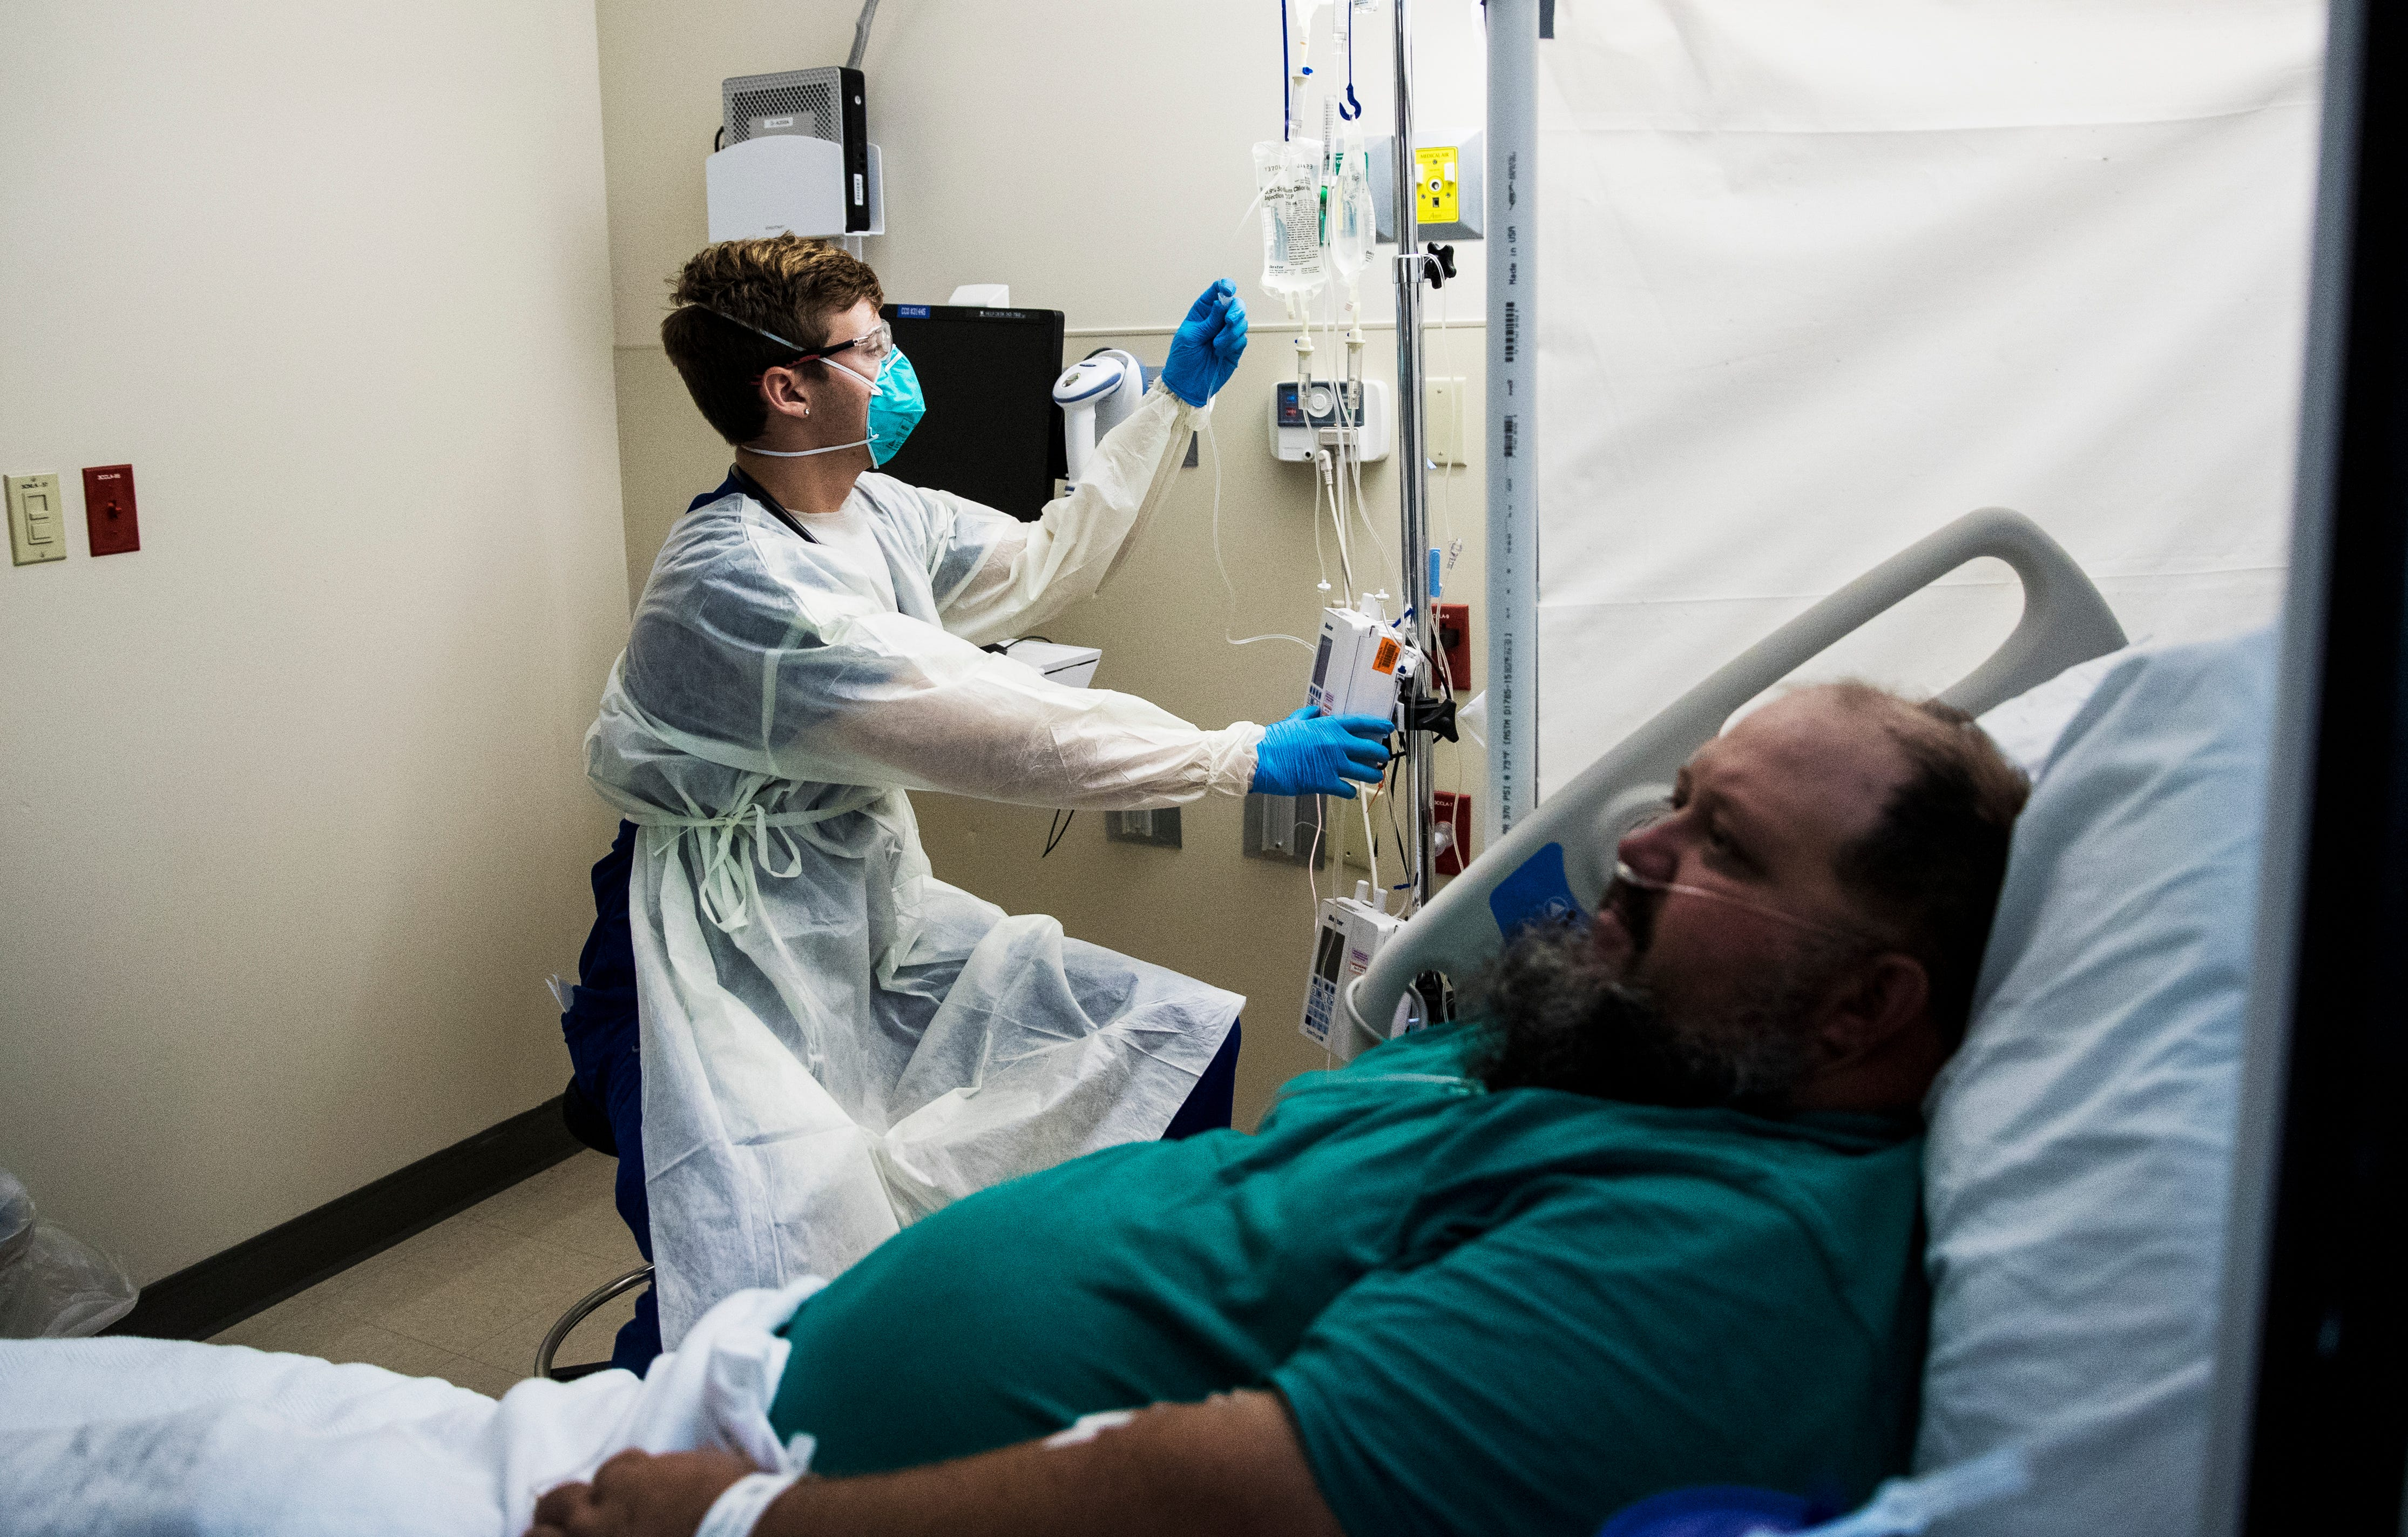 Matthew Josephson, a registered nurse at Gulf Coast Medical Center, treats Aaron Renfroe for symptoms associated with COVID-19 on Friday, Aug. 13, 2021. Renfroe, who is unvaccinated, tested positive for COVID-19 along with his family. He said his wife is also in the hospital with COVID-19.